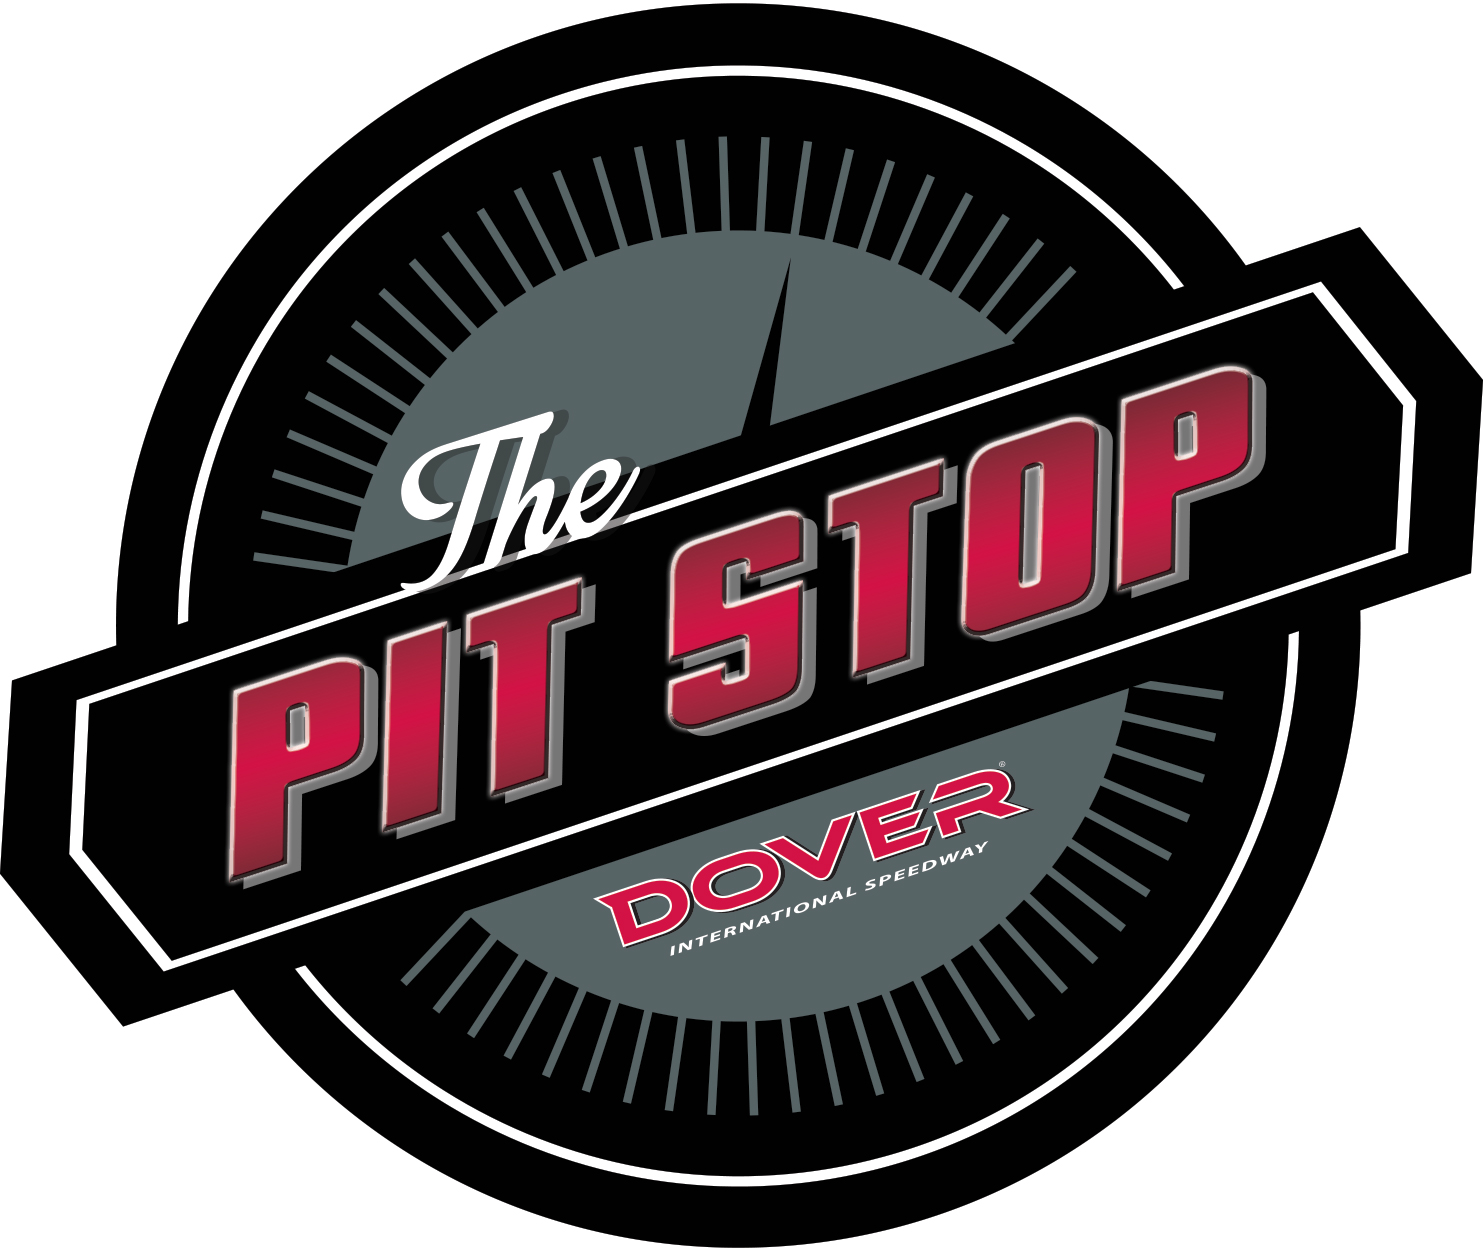 The Pit Stop now with Turn 4 ticket.